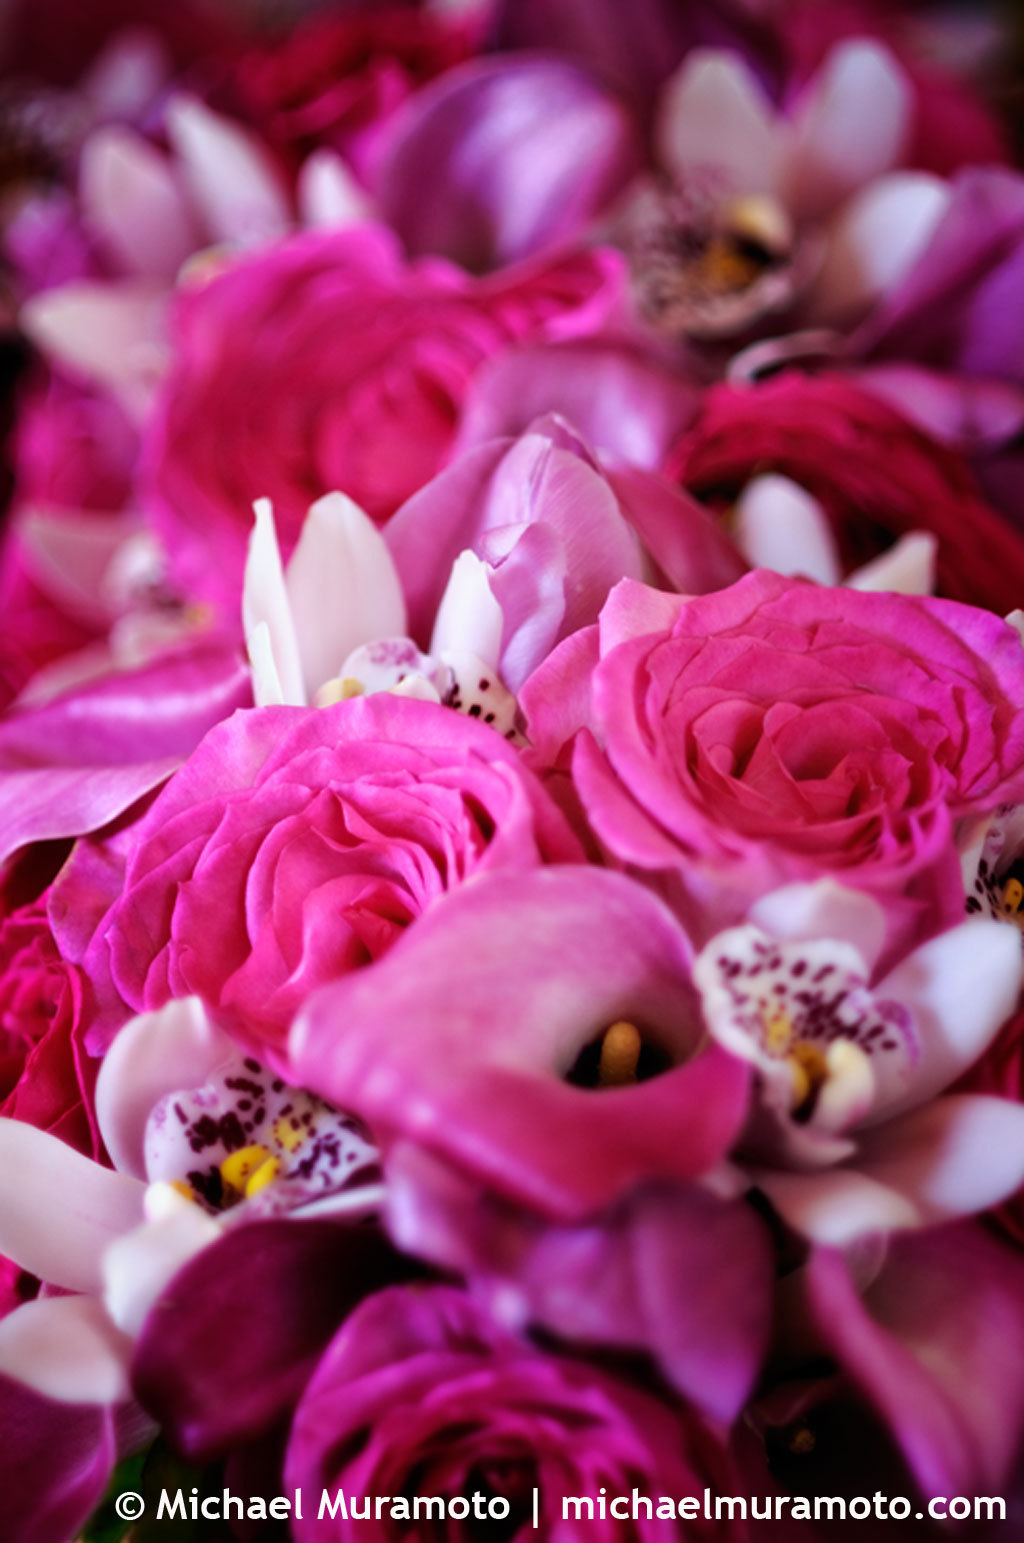 Flowers & Decor, pink, Bride Bouquets, Flowers, Bouquet, San francisco, Michael muramoto photography